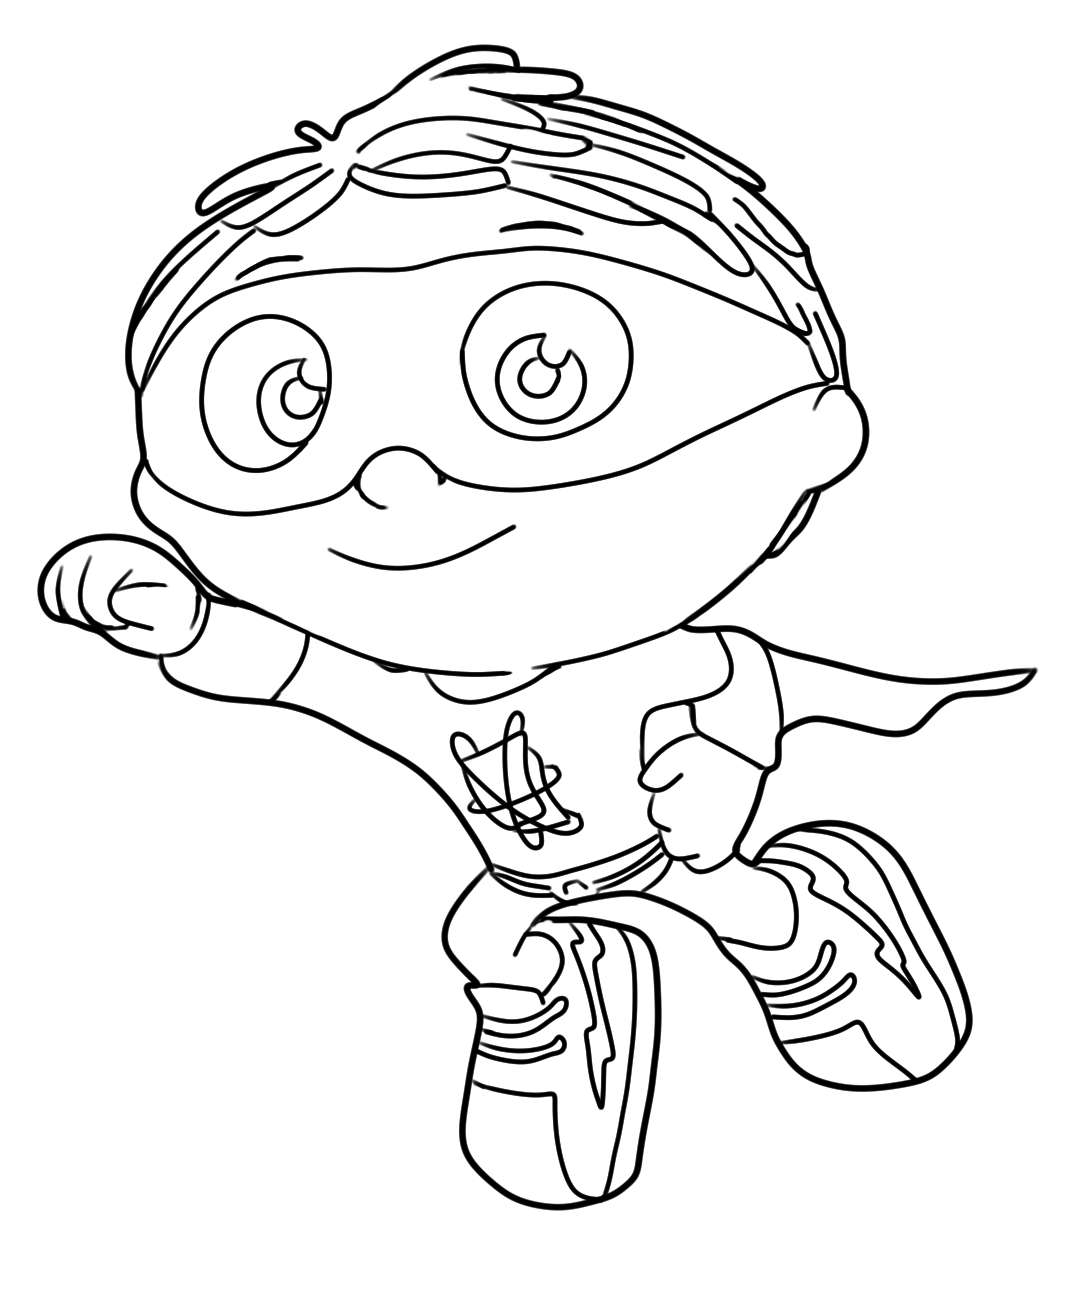 1085x1295 Super Why Coloring Pages Free Download Coloring Pages For Kids